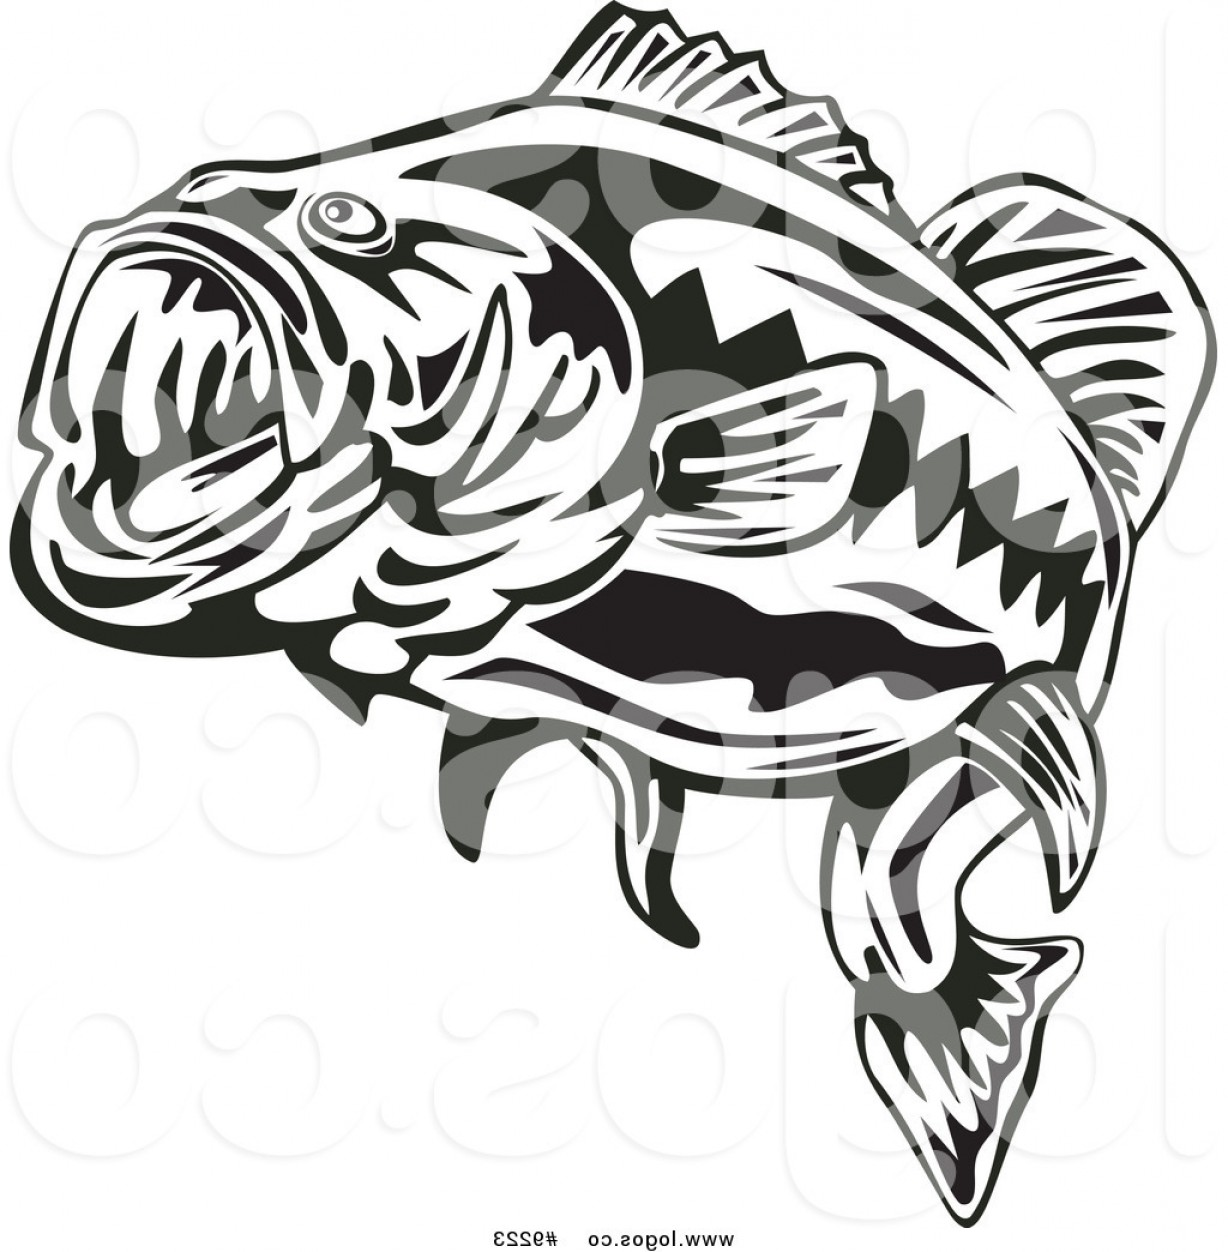 Royalty clip art vector. Free large mouth bass chasing a lure clipart